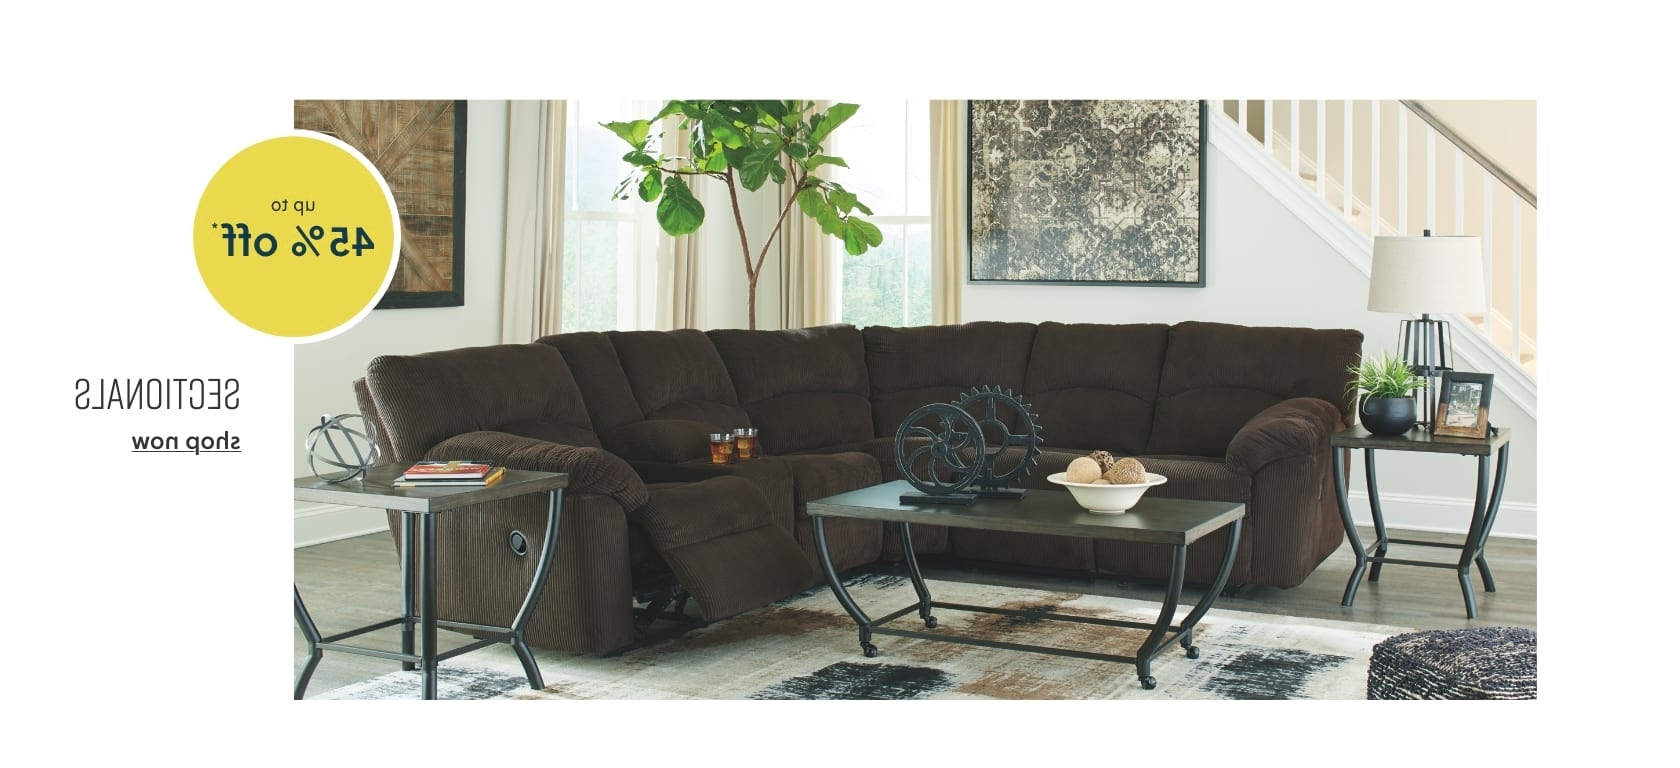 Home Furniture & Decor Within Murfreesboro Tn Sectional Sofas (View 11 of 15)